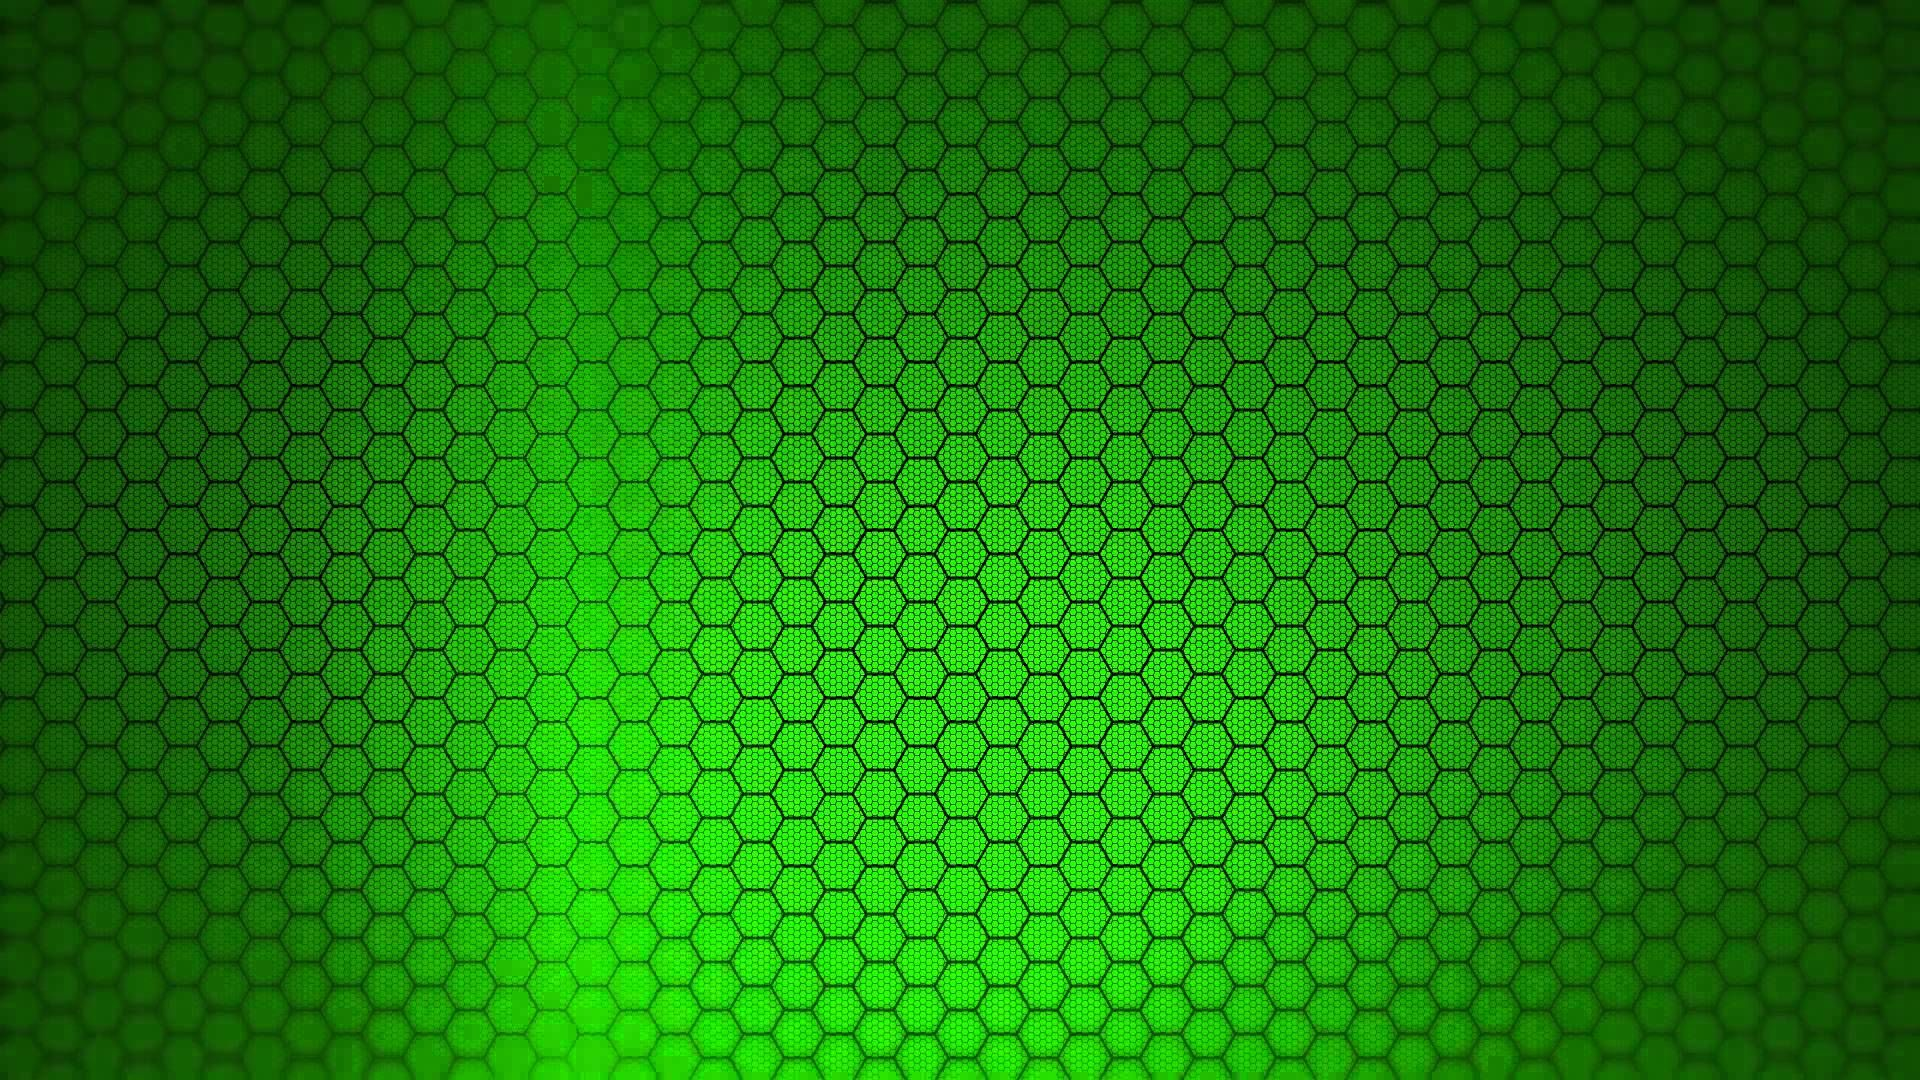 maxresdefault.jpg Green wallpaper, Red wallpaper, Green